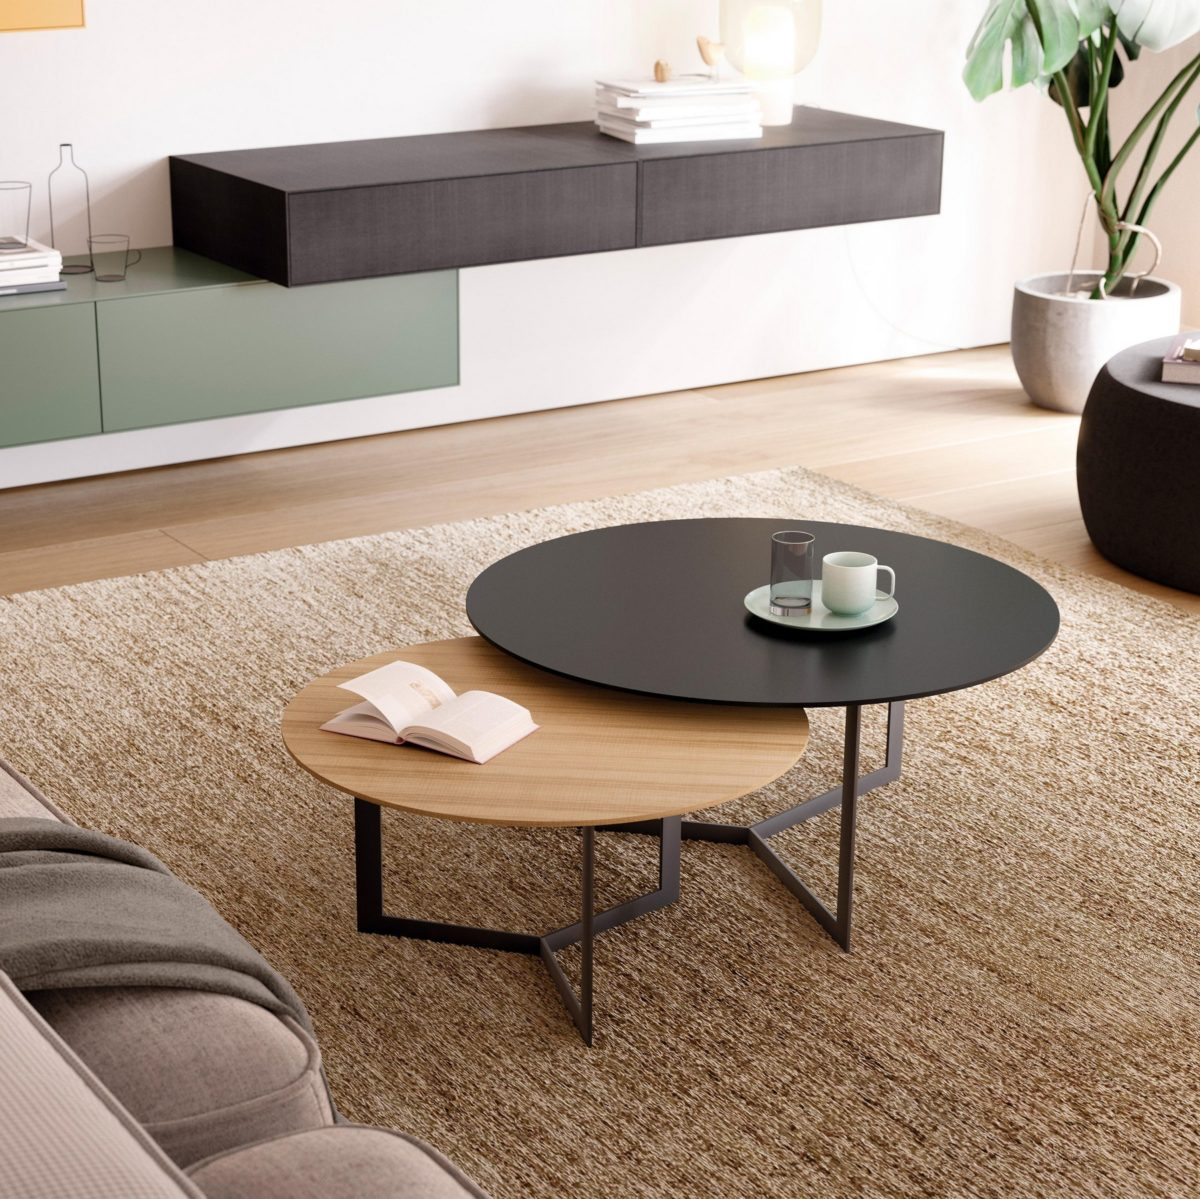 Treku kabi coffee table 02 b arcit18